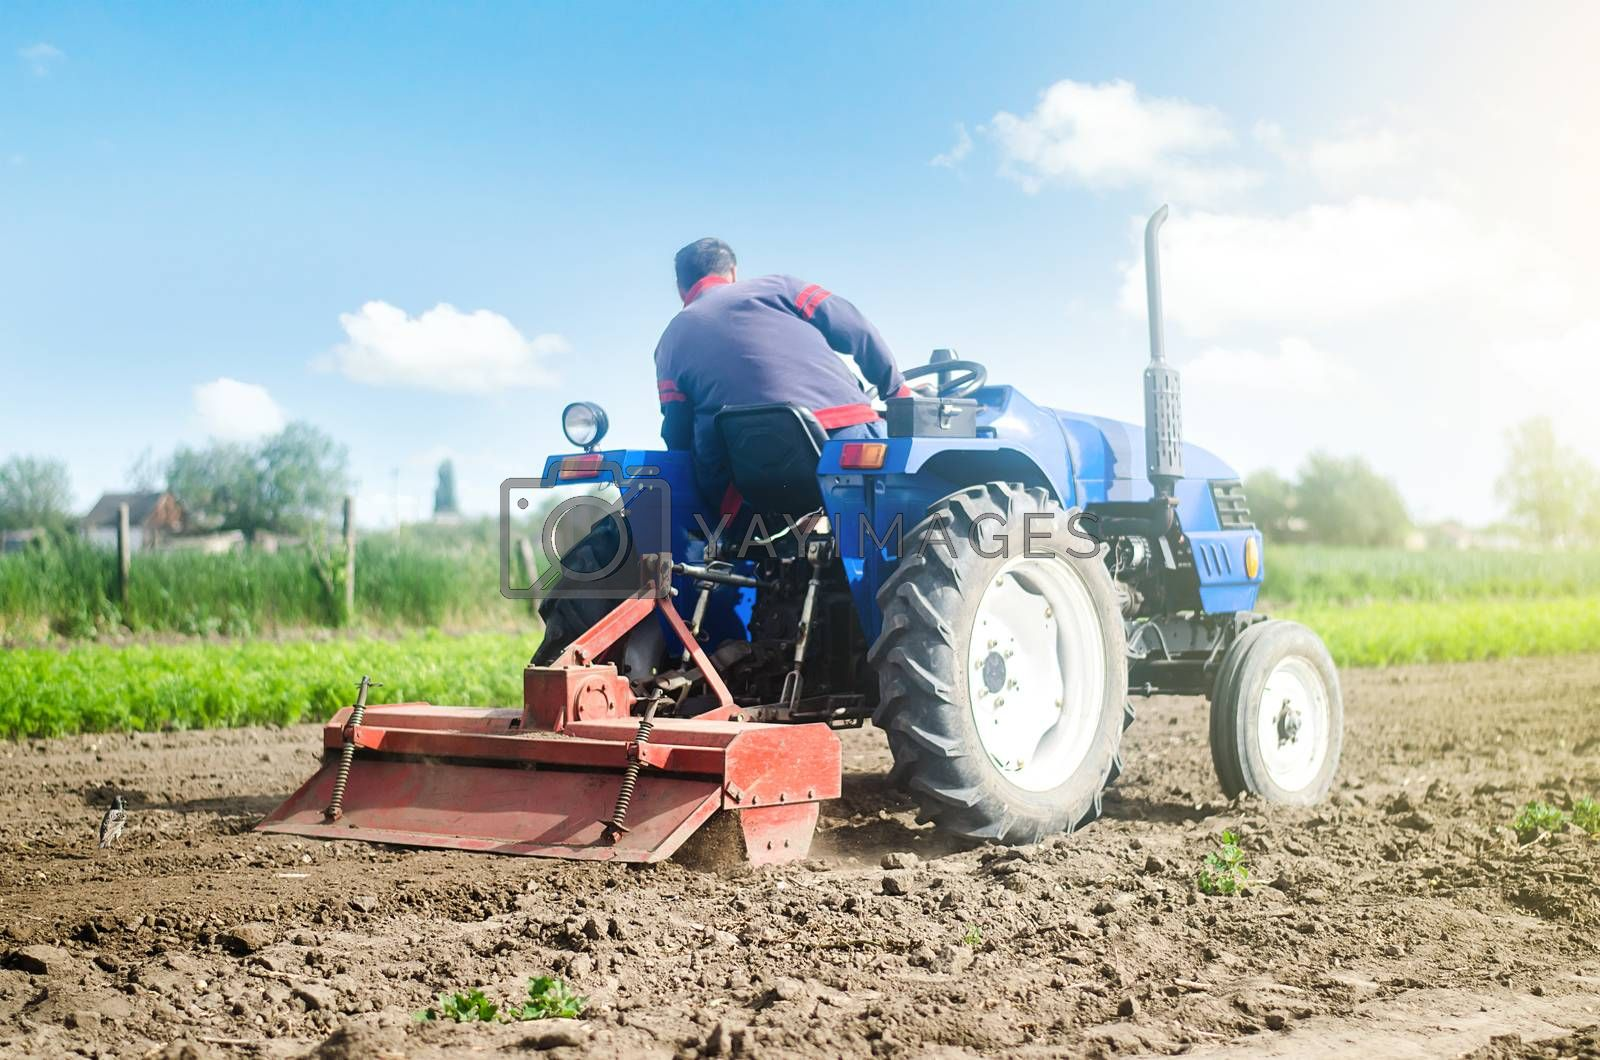 Farmer on a tractor with a milling machine processes loosens soil in the farm field. Preparation for new crop planting. Loosening surface, cultivating the land. Grind and mix soil on plantation.